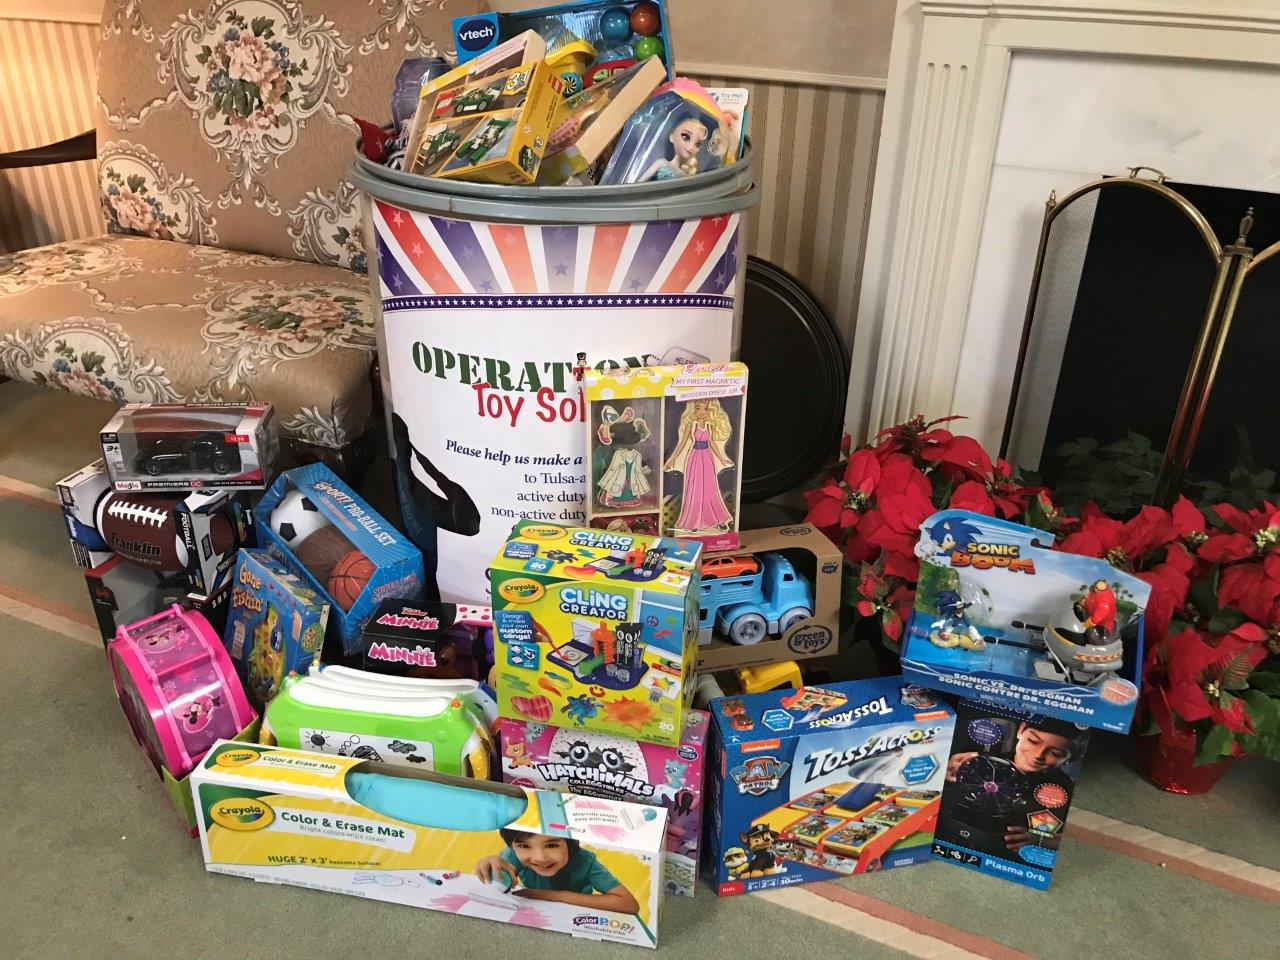 Operation Toy Soldier 2017 - Toy collection at Stumpff Funeral Home